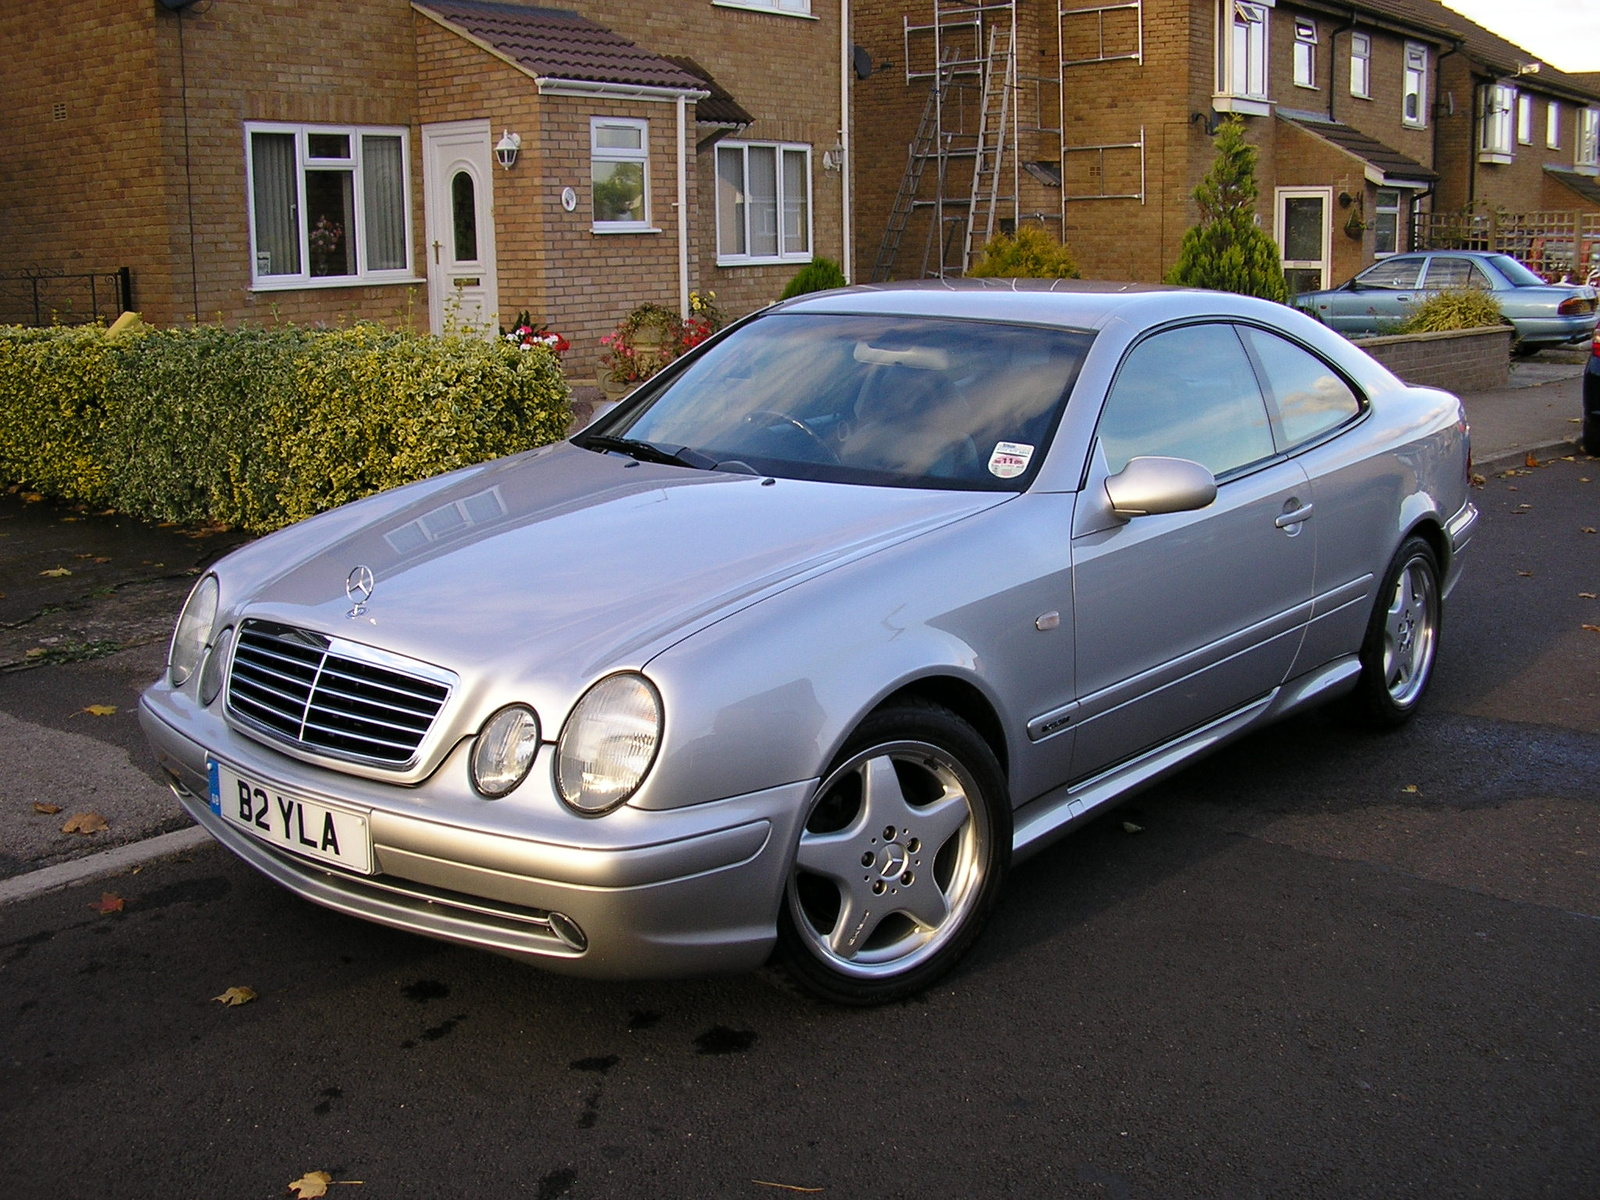 1998 mercedes benz clk class other pictures cargurus for 1998 mercedes benz clk 320